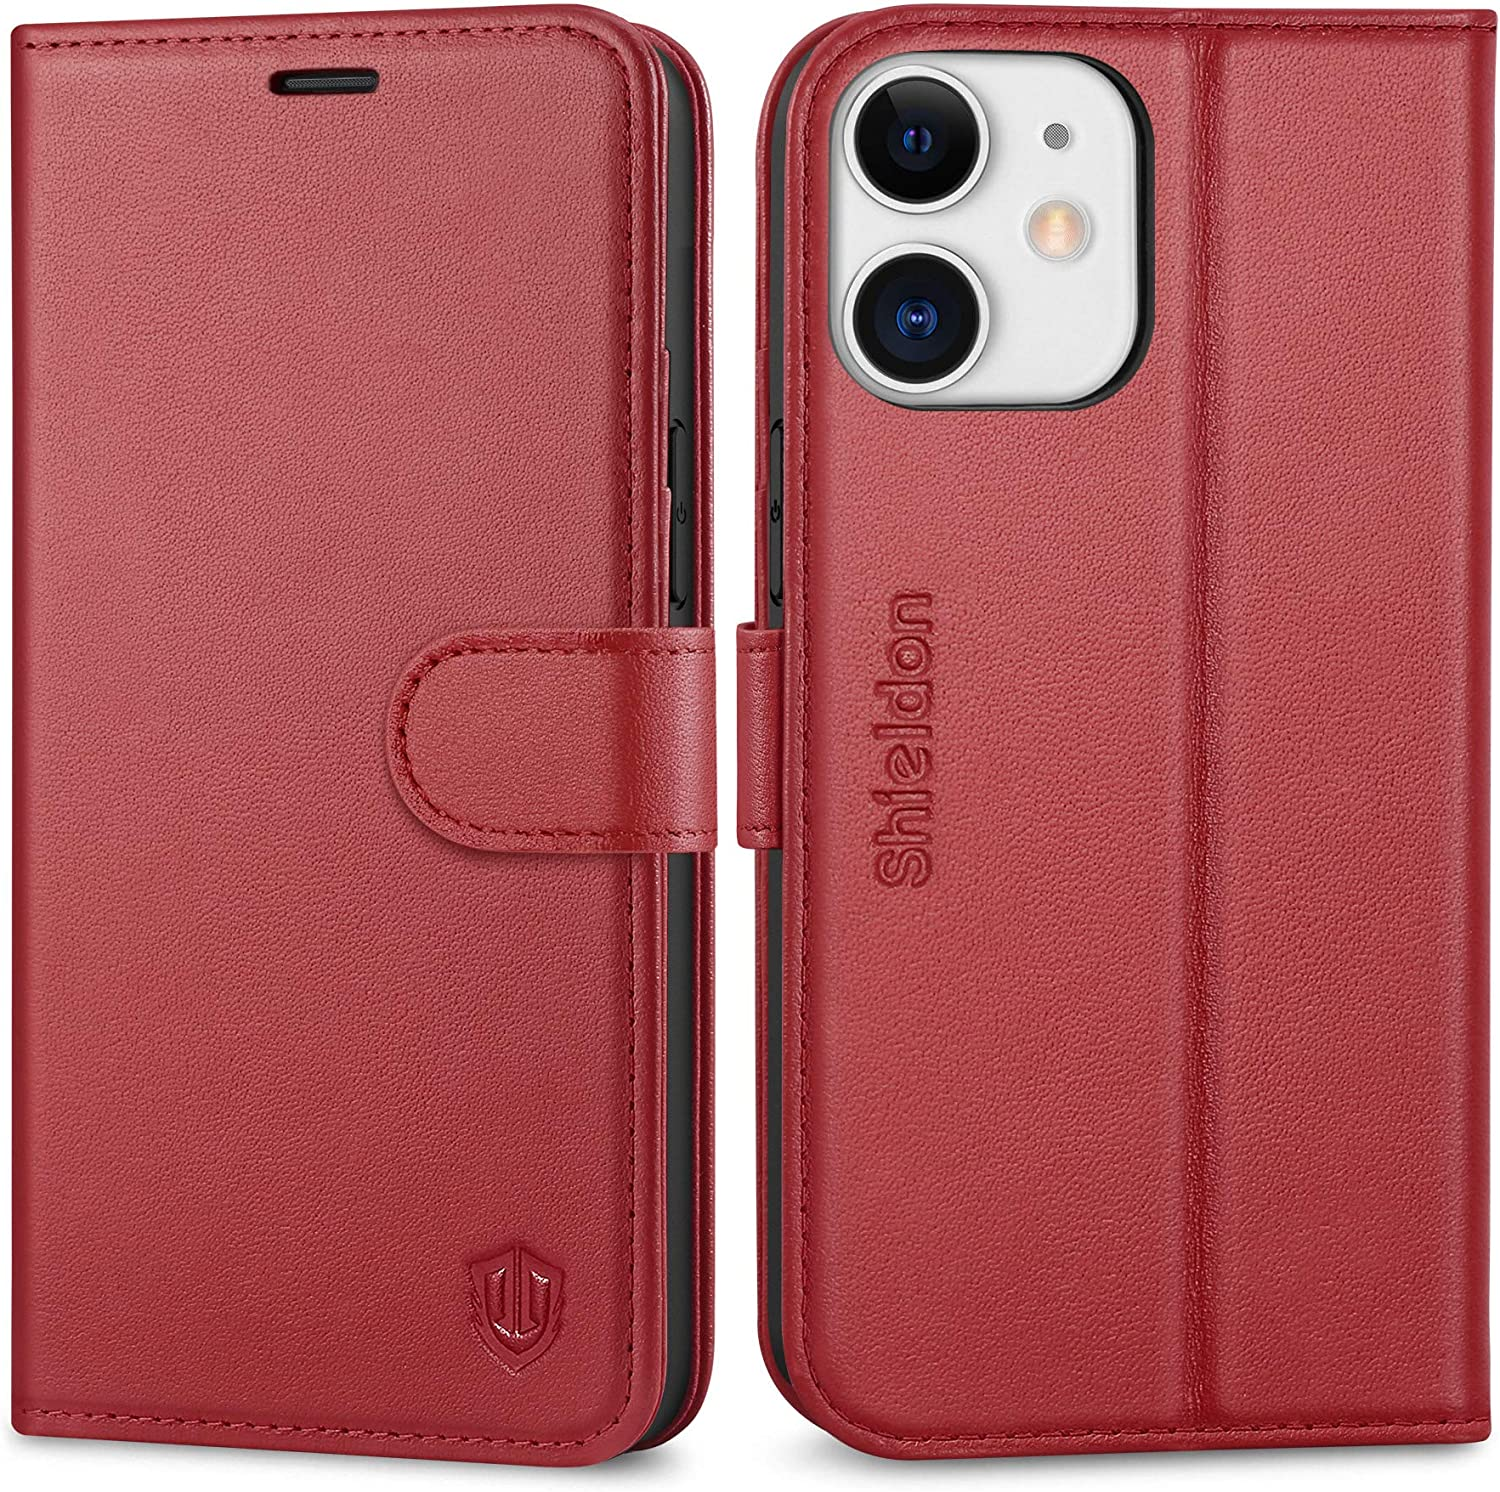 SHIELDON Case for iPhone 12 Mini, Wallet Case for iPhone 12 Mini, Genuine Leather Flip Magnetic RFID Blocking Card Holder Kickstand Shockproof Case Compatible with iPhone 12 Mini 5G 5.4